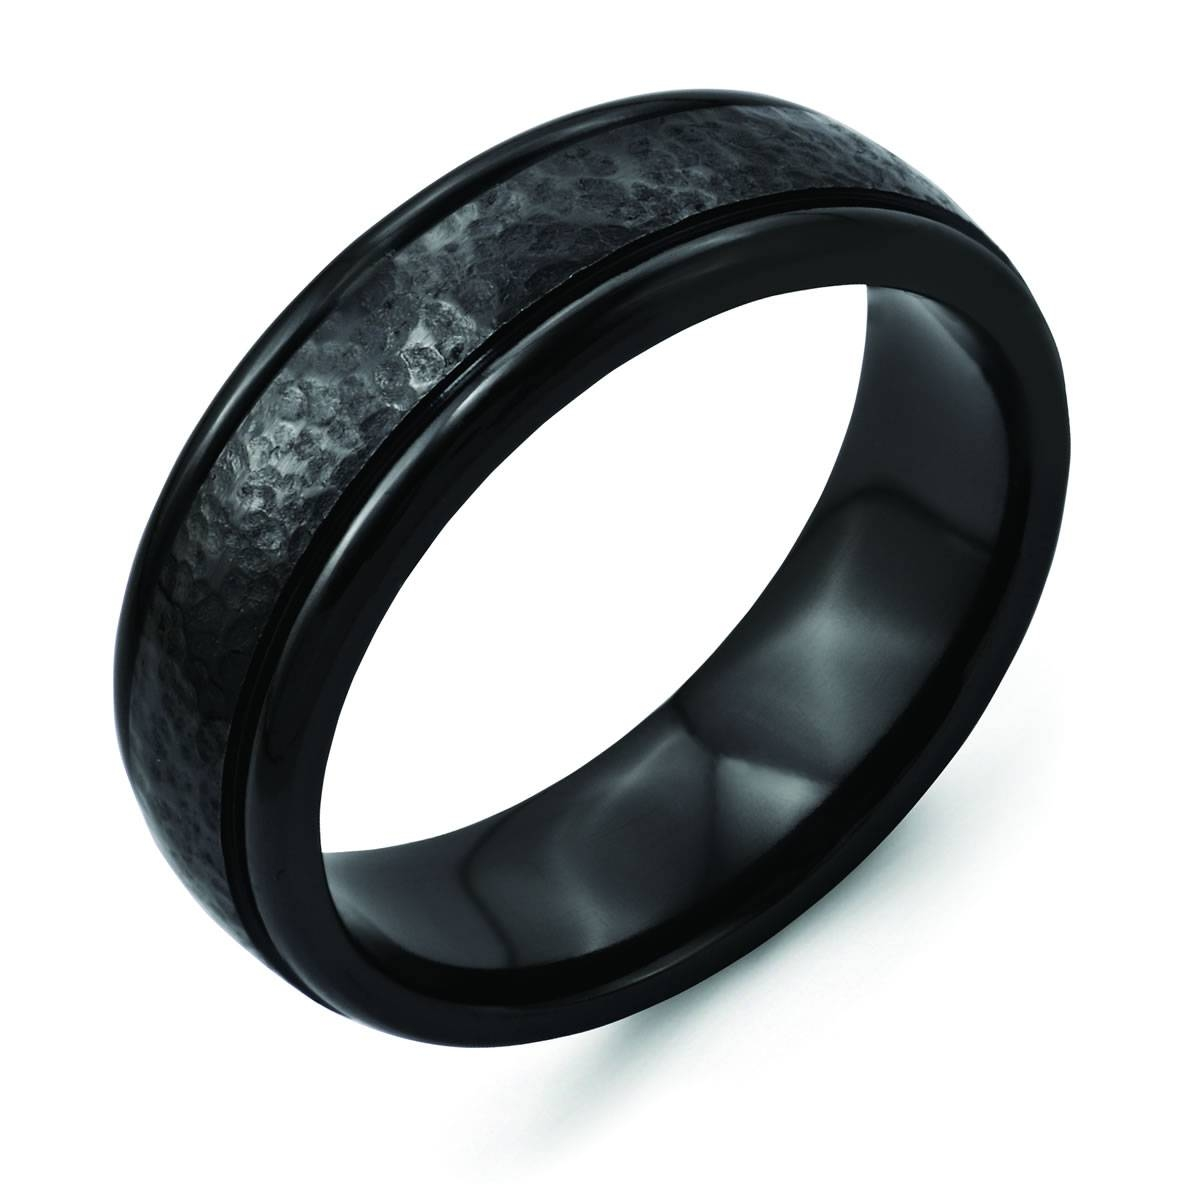 Titanium Black Ti Hammered Ridged Edge 7Mm Brushed Men's Wedding Pertaining To Tungsten Hammered Wedding Bands (View 12 of 15)